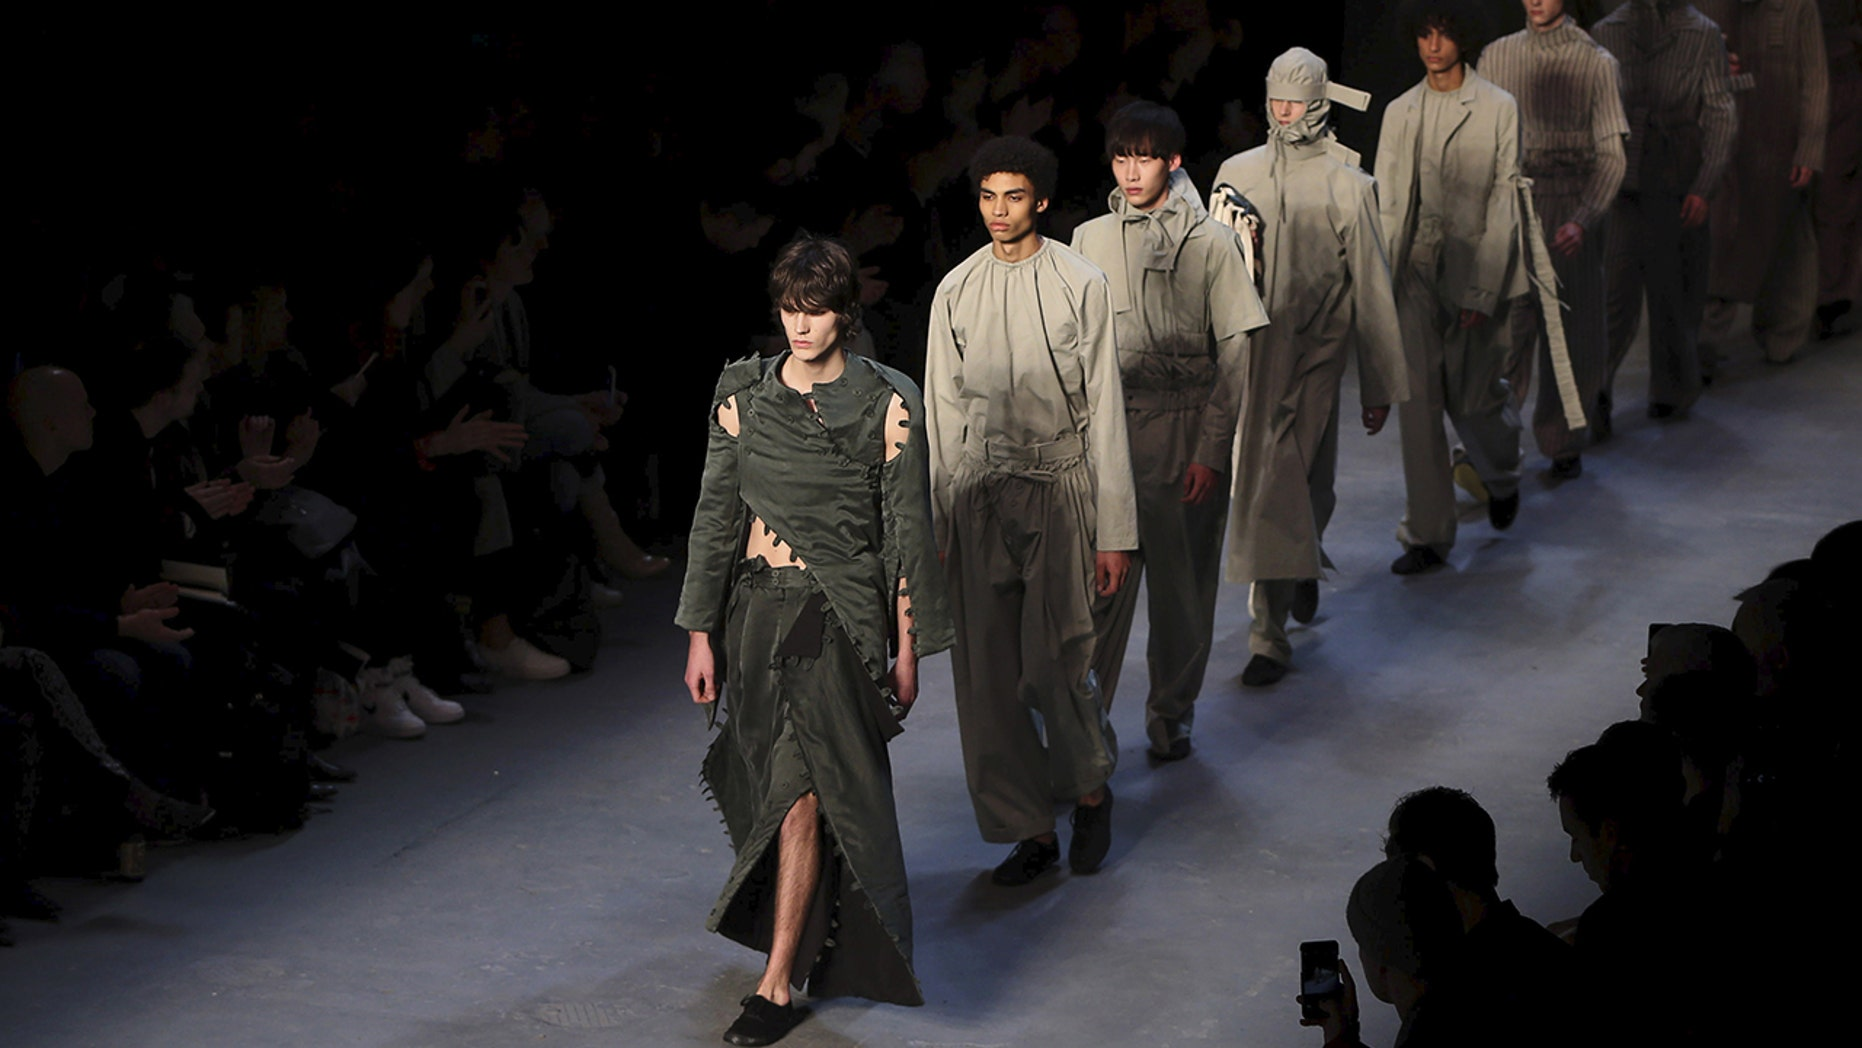 Several menswear collections debuted at the London fashion show featured men in a variety of skirts.